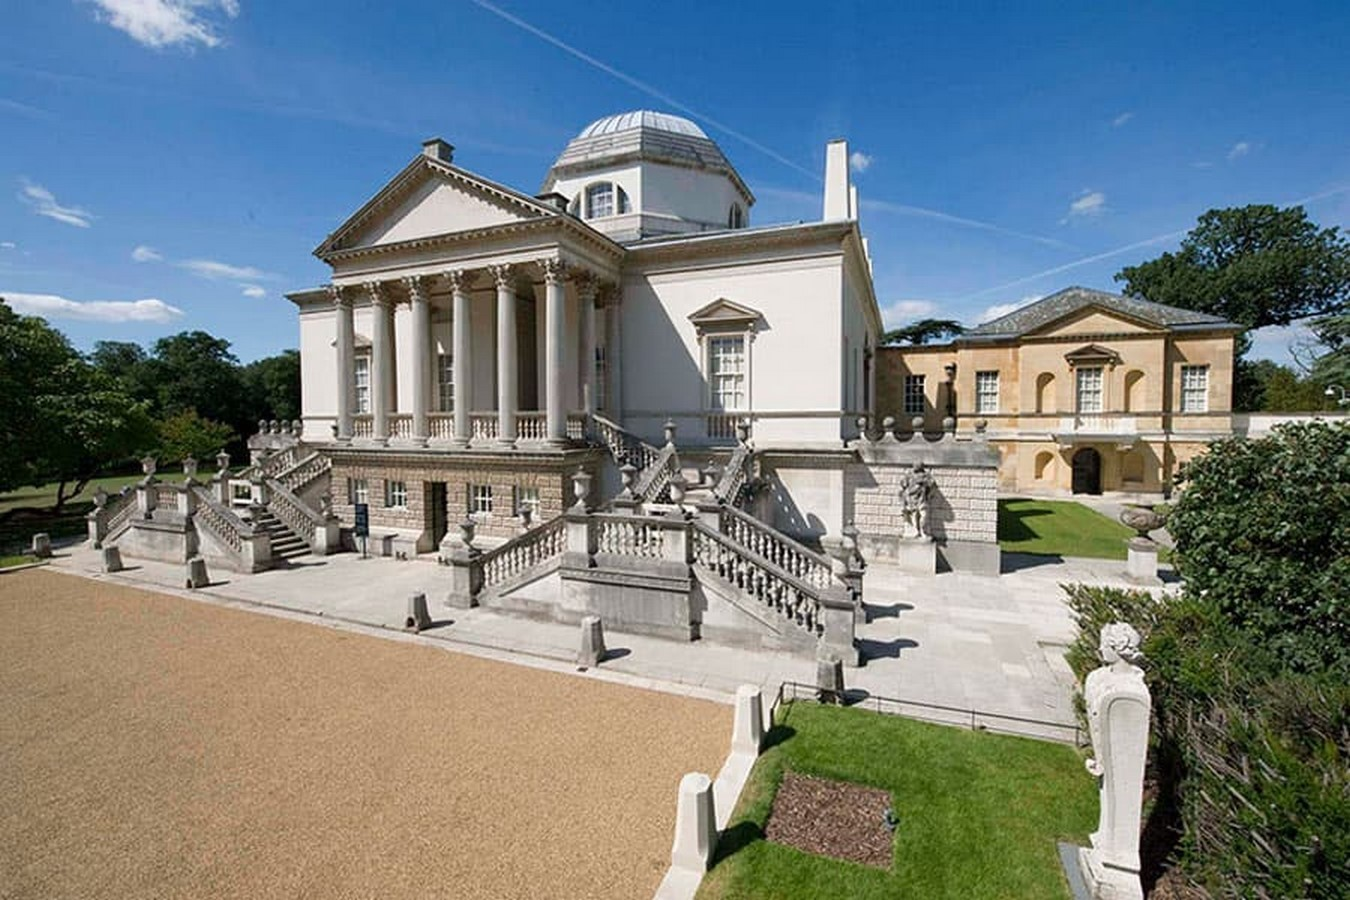 Neoclassical architecture is thought to have developed in two phases: